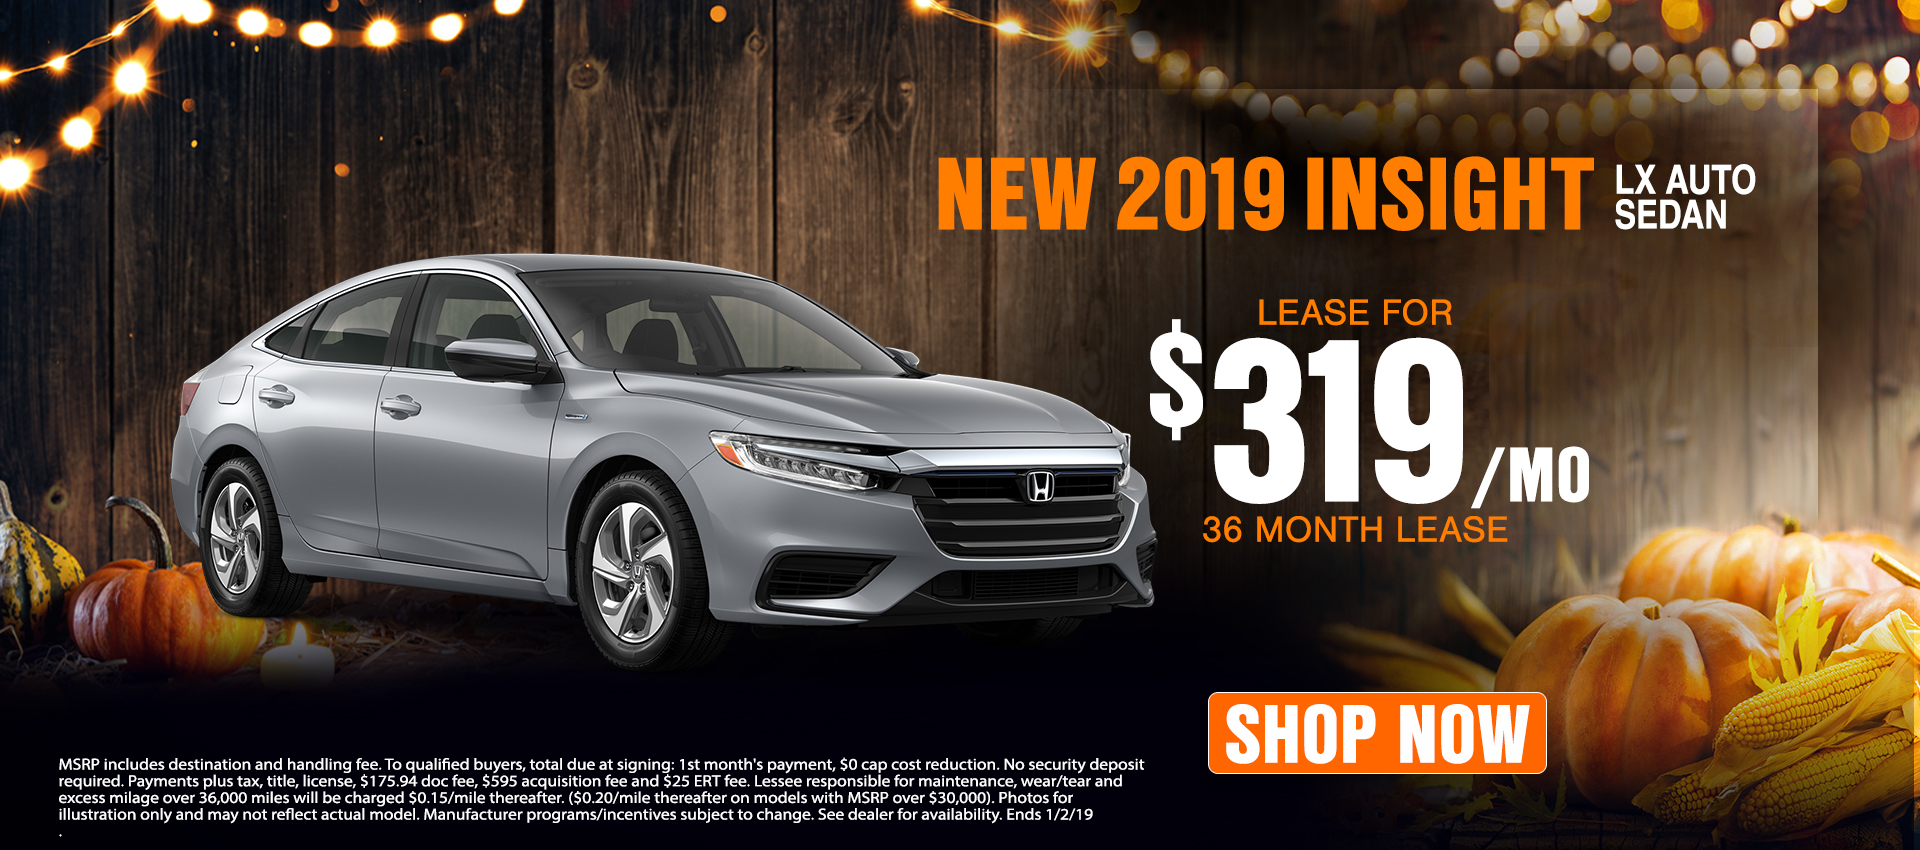 2019 Honda Insight $319 Lease